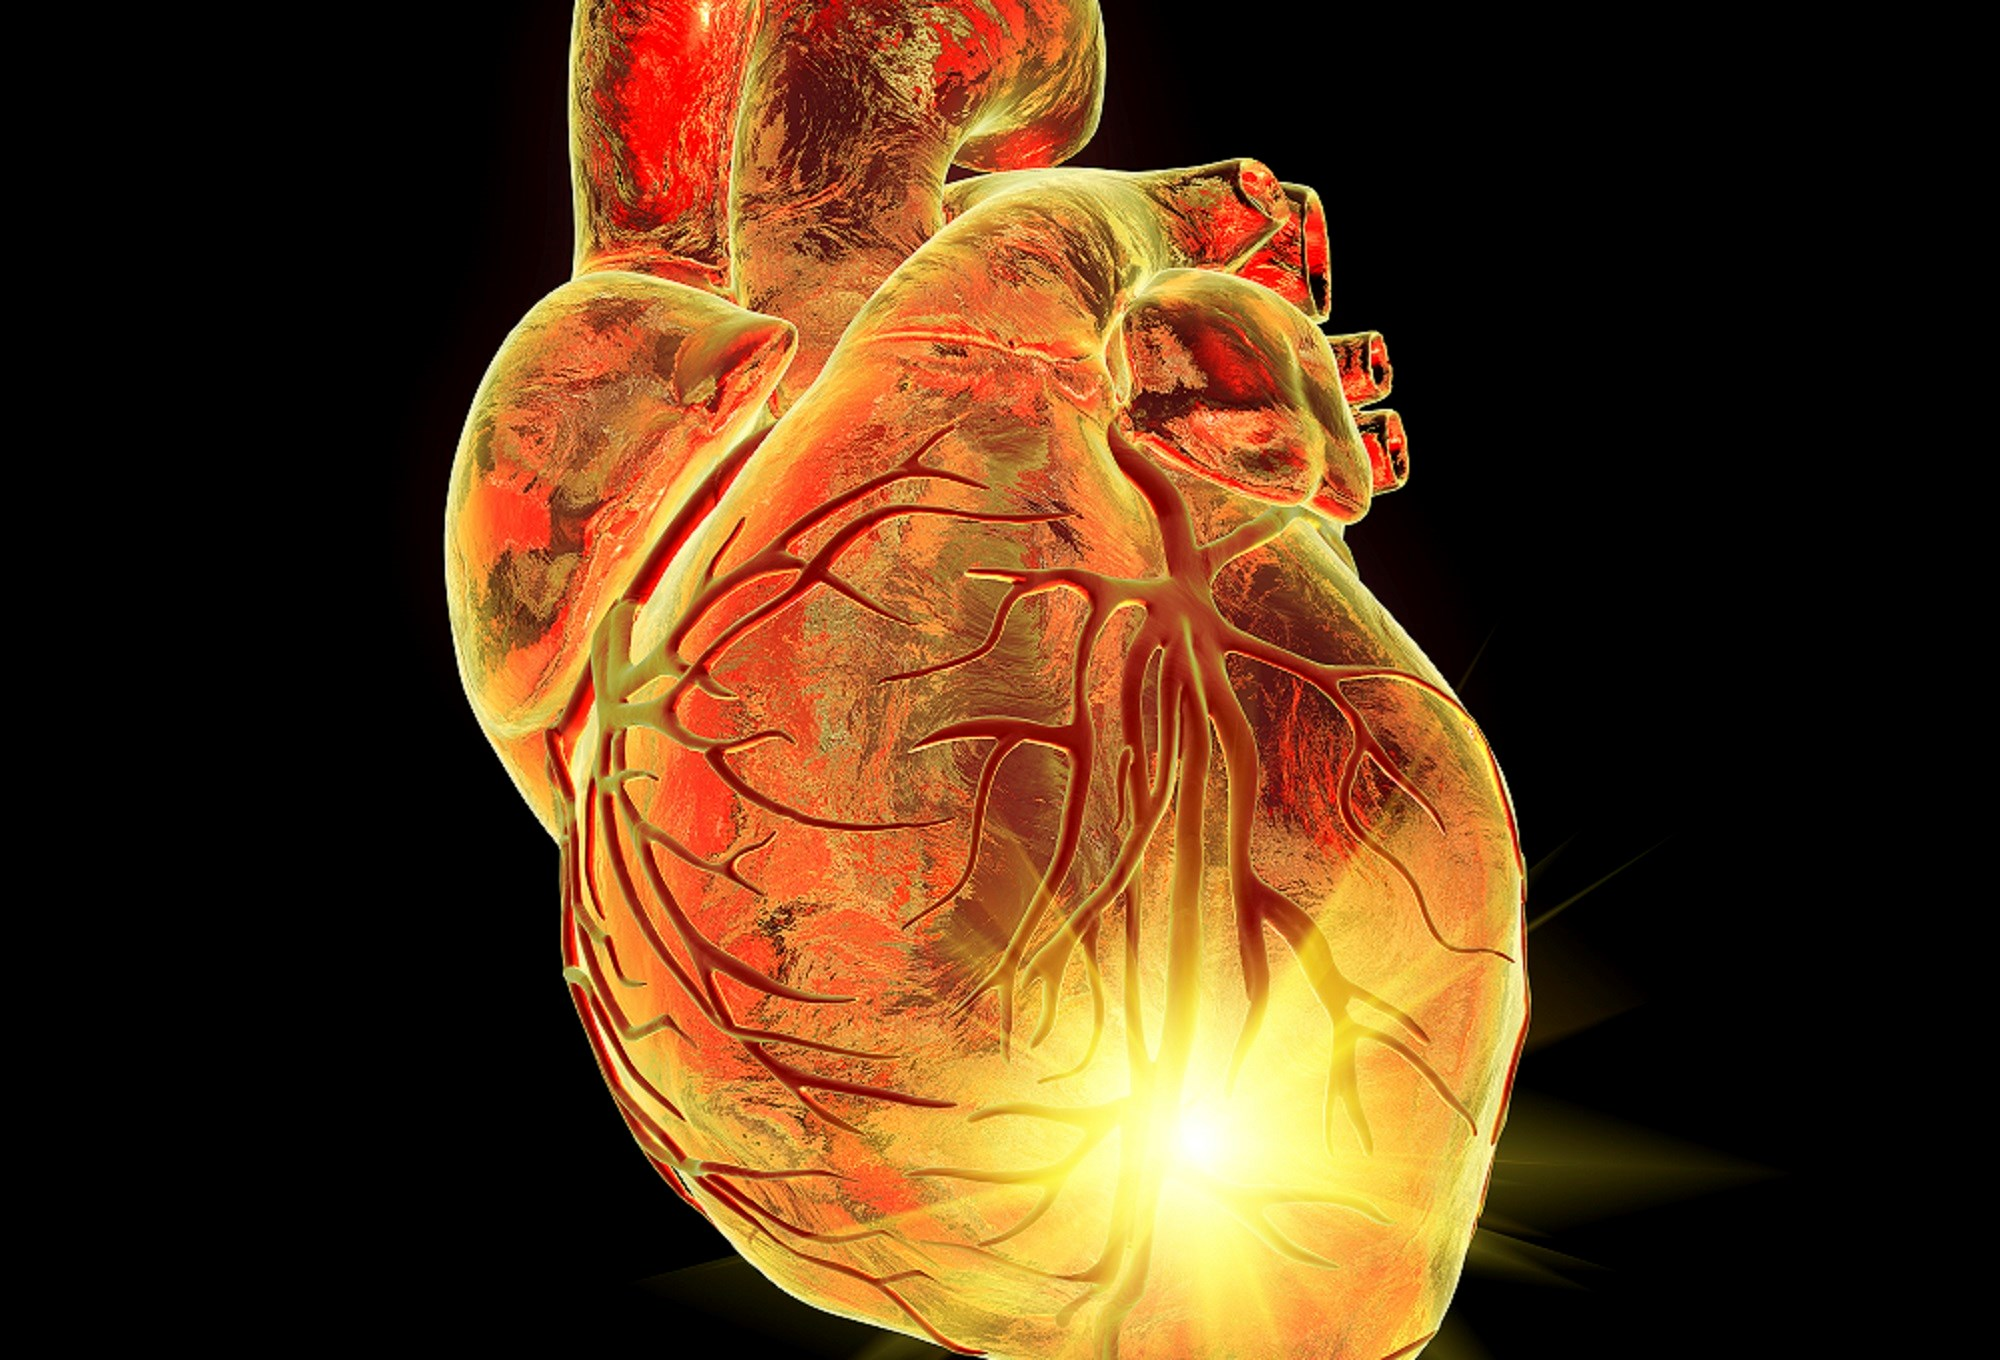 Subclinical myocardial inflammation was frequent, associated with RA disease activity, and decreased with RA therapy.